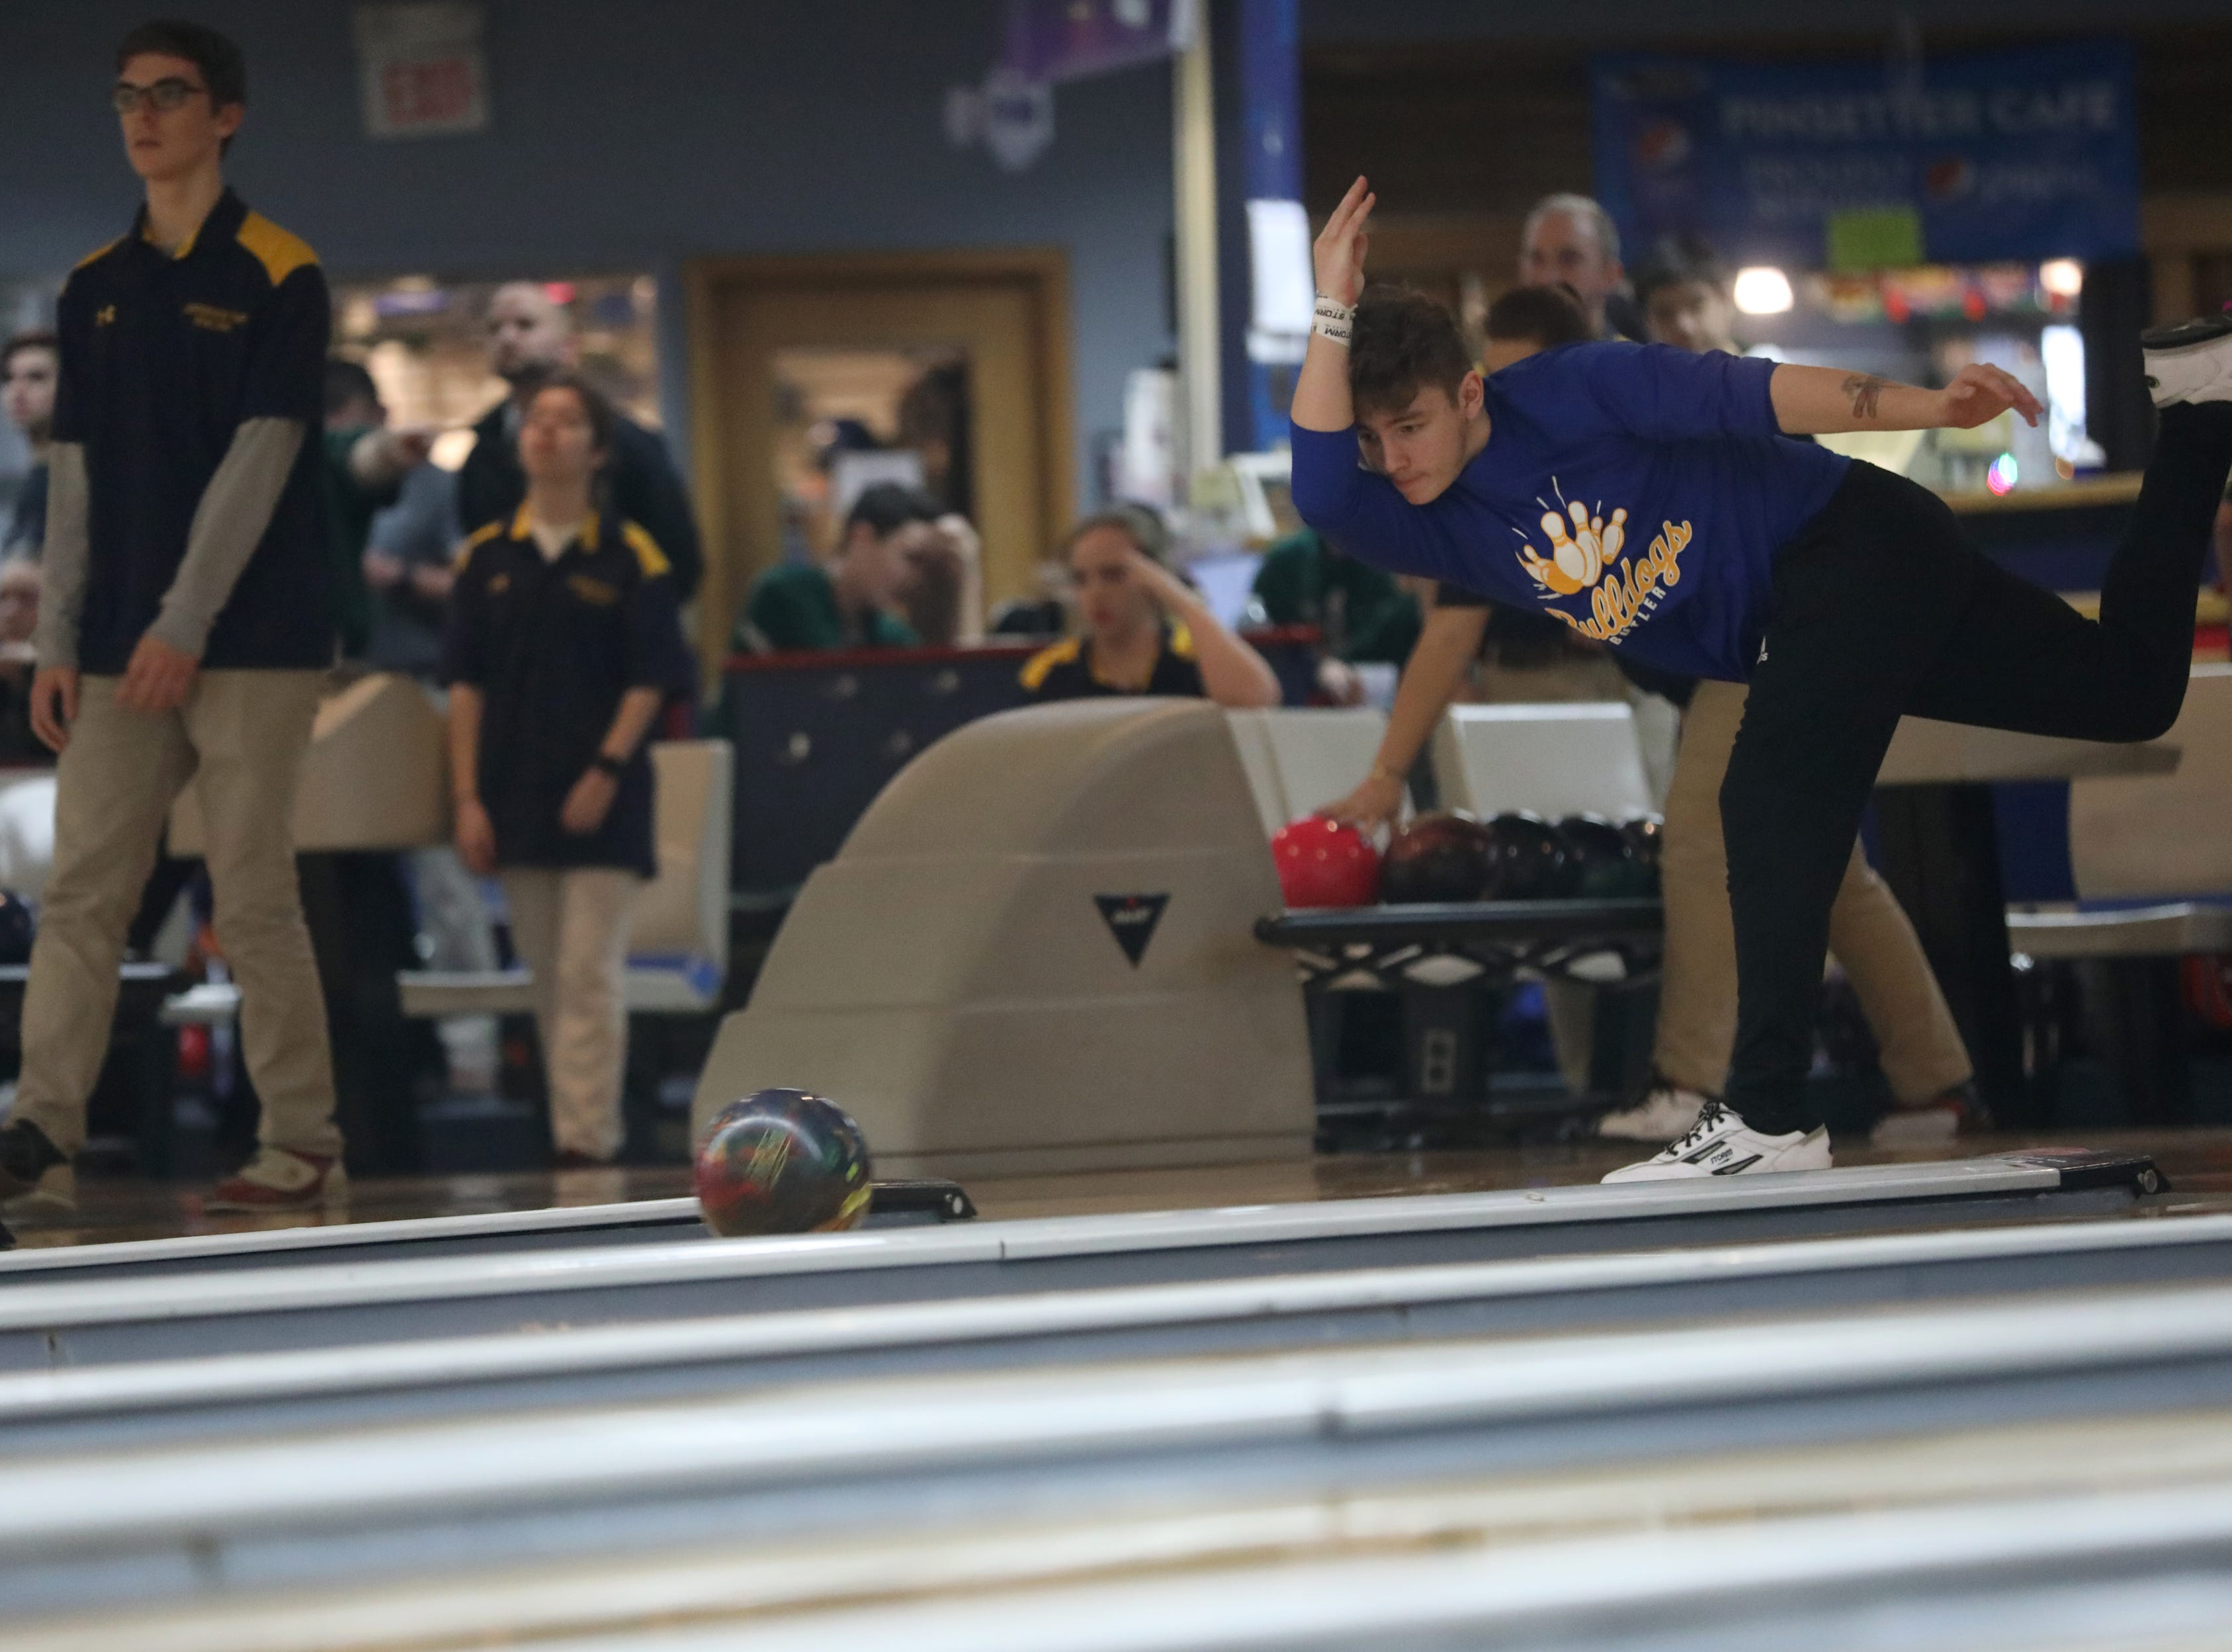 Aiden Marletta, of Butler, competes at the Morris County Bowling Tournament, in Rockaway. Thursday, January 24, 2019